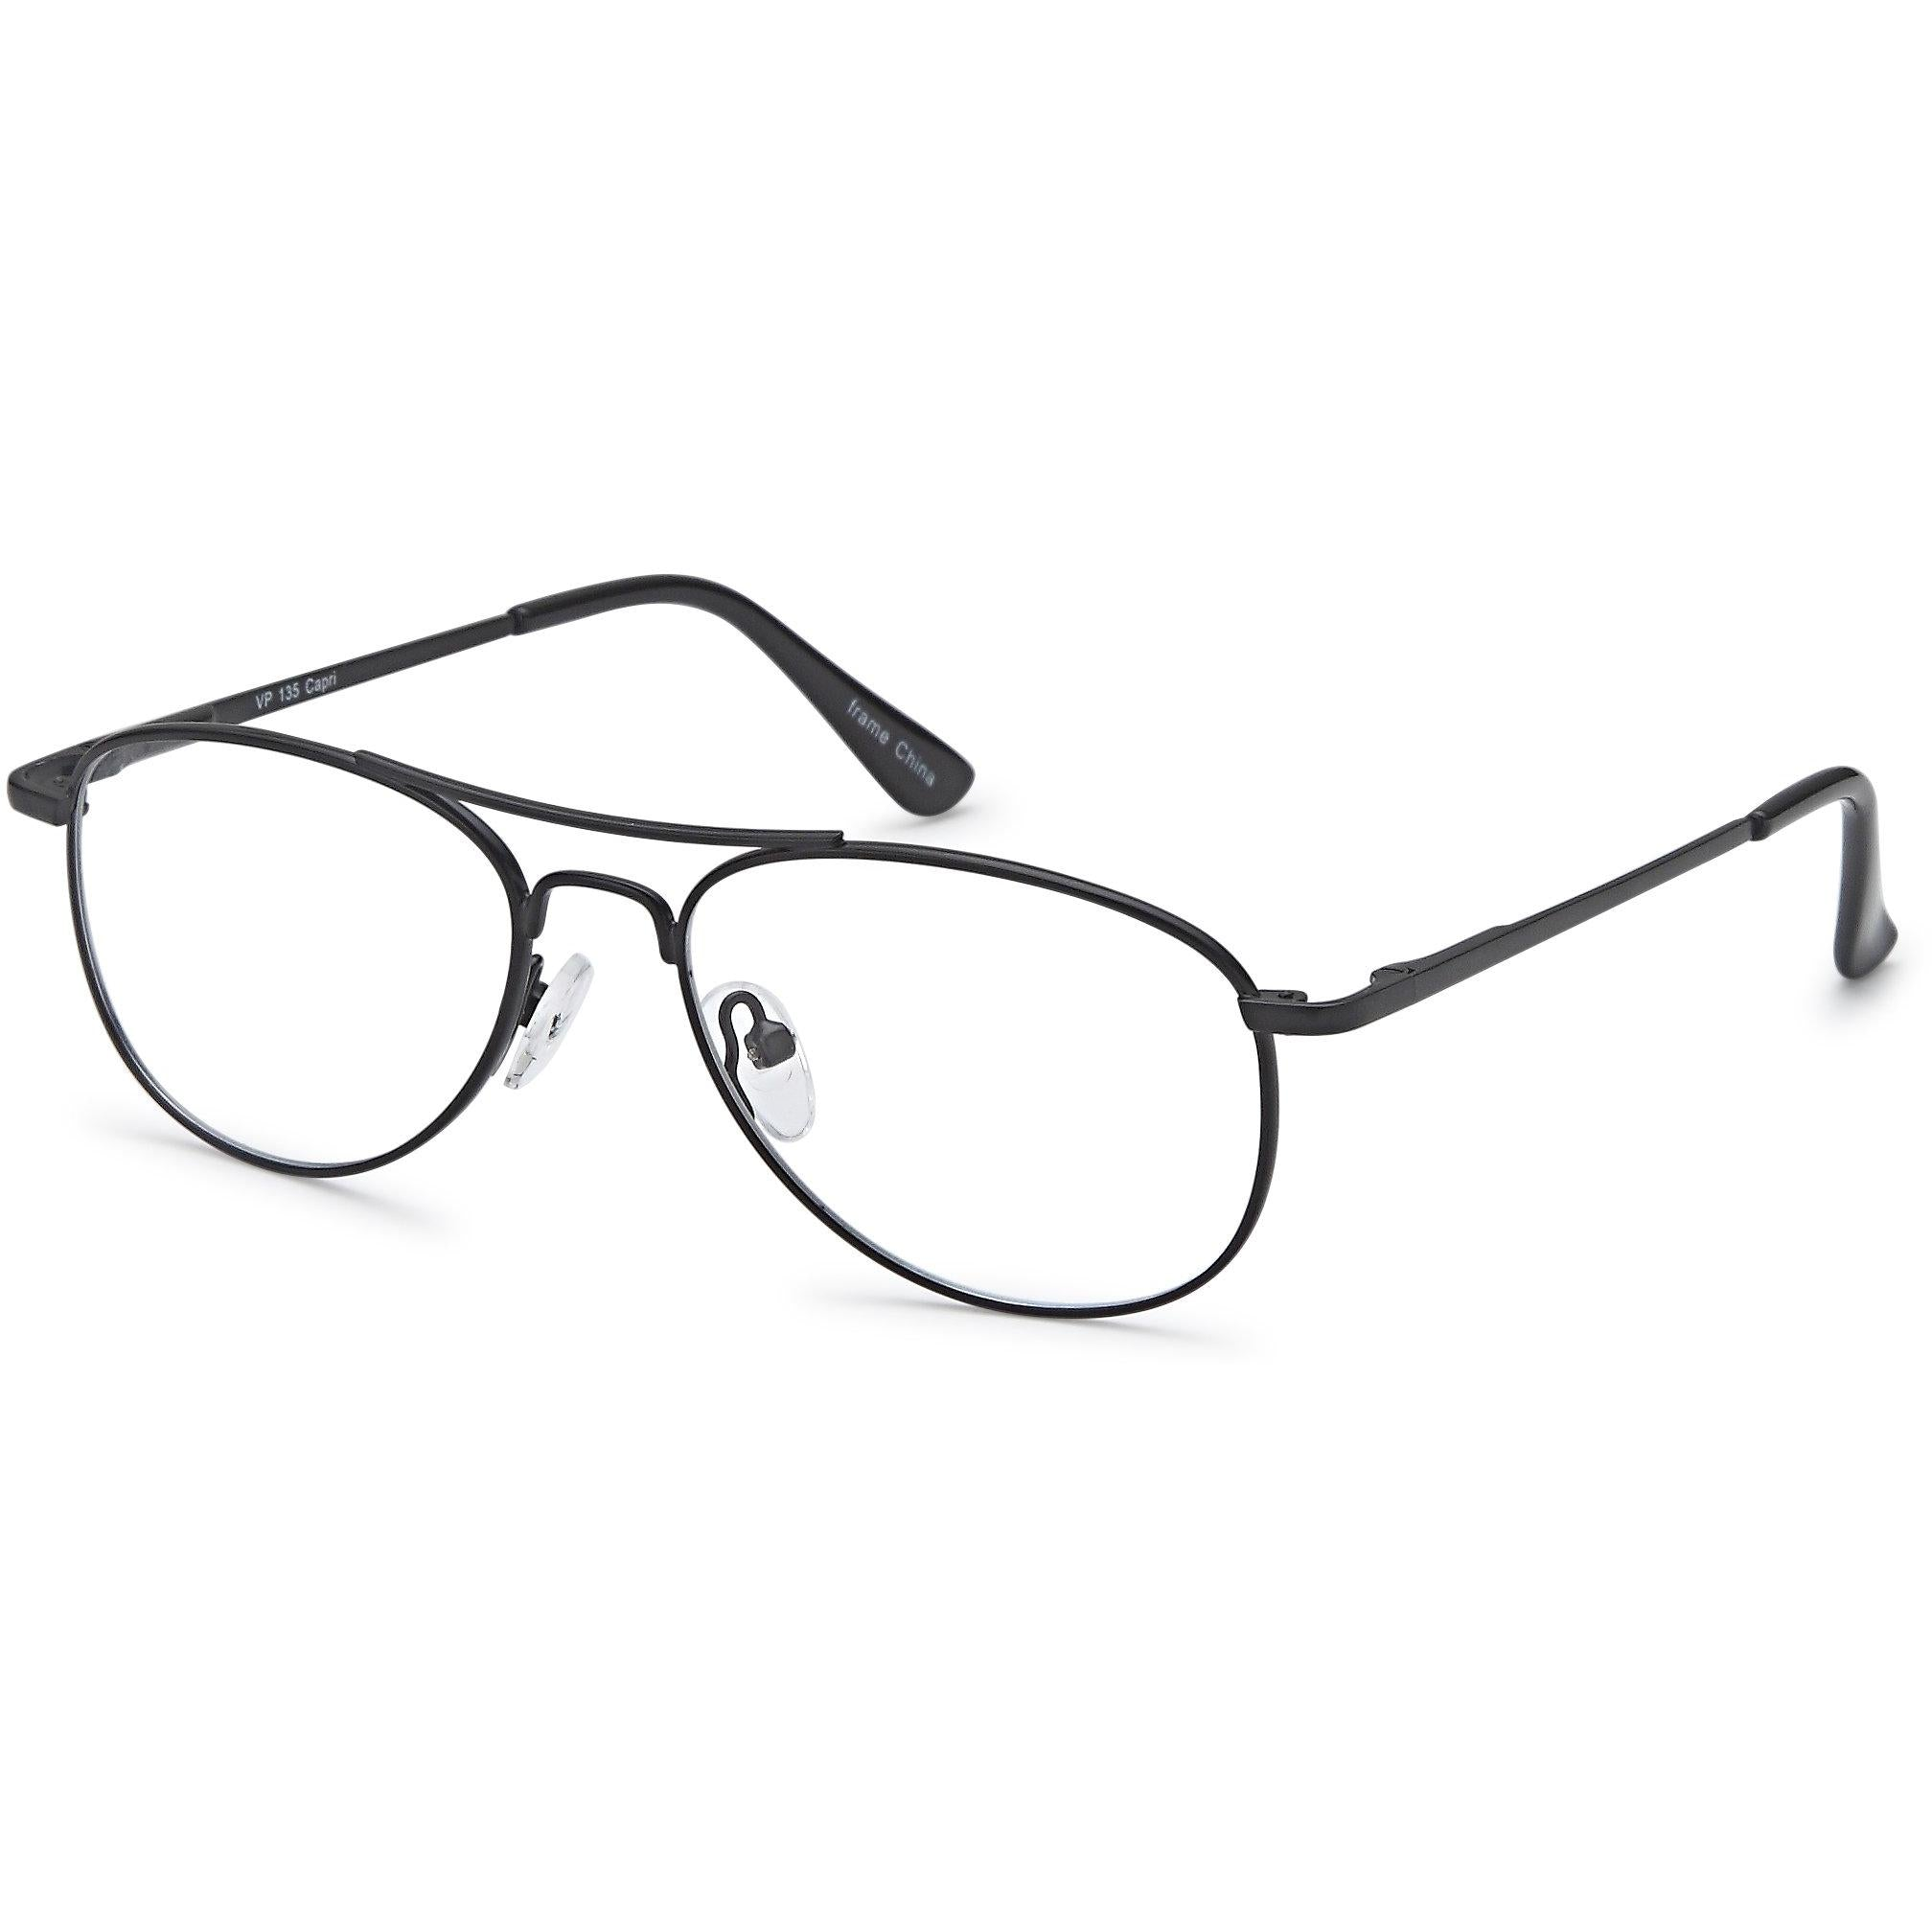 Charlie Glasses by The Square Mile Aviator Juniors Eyeglasses - timetoshade